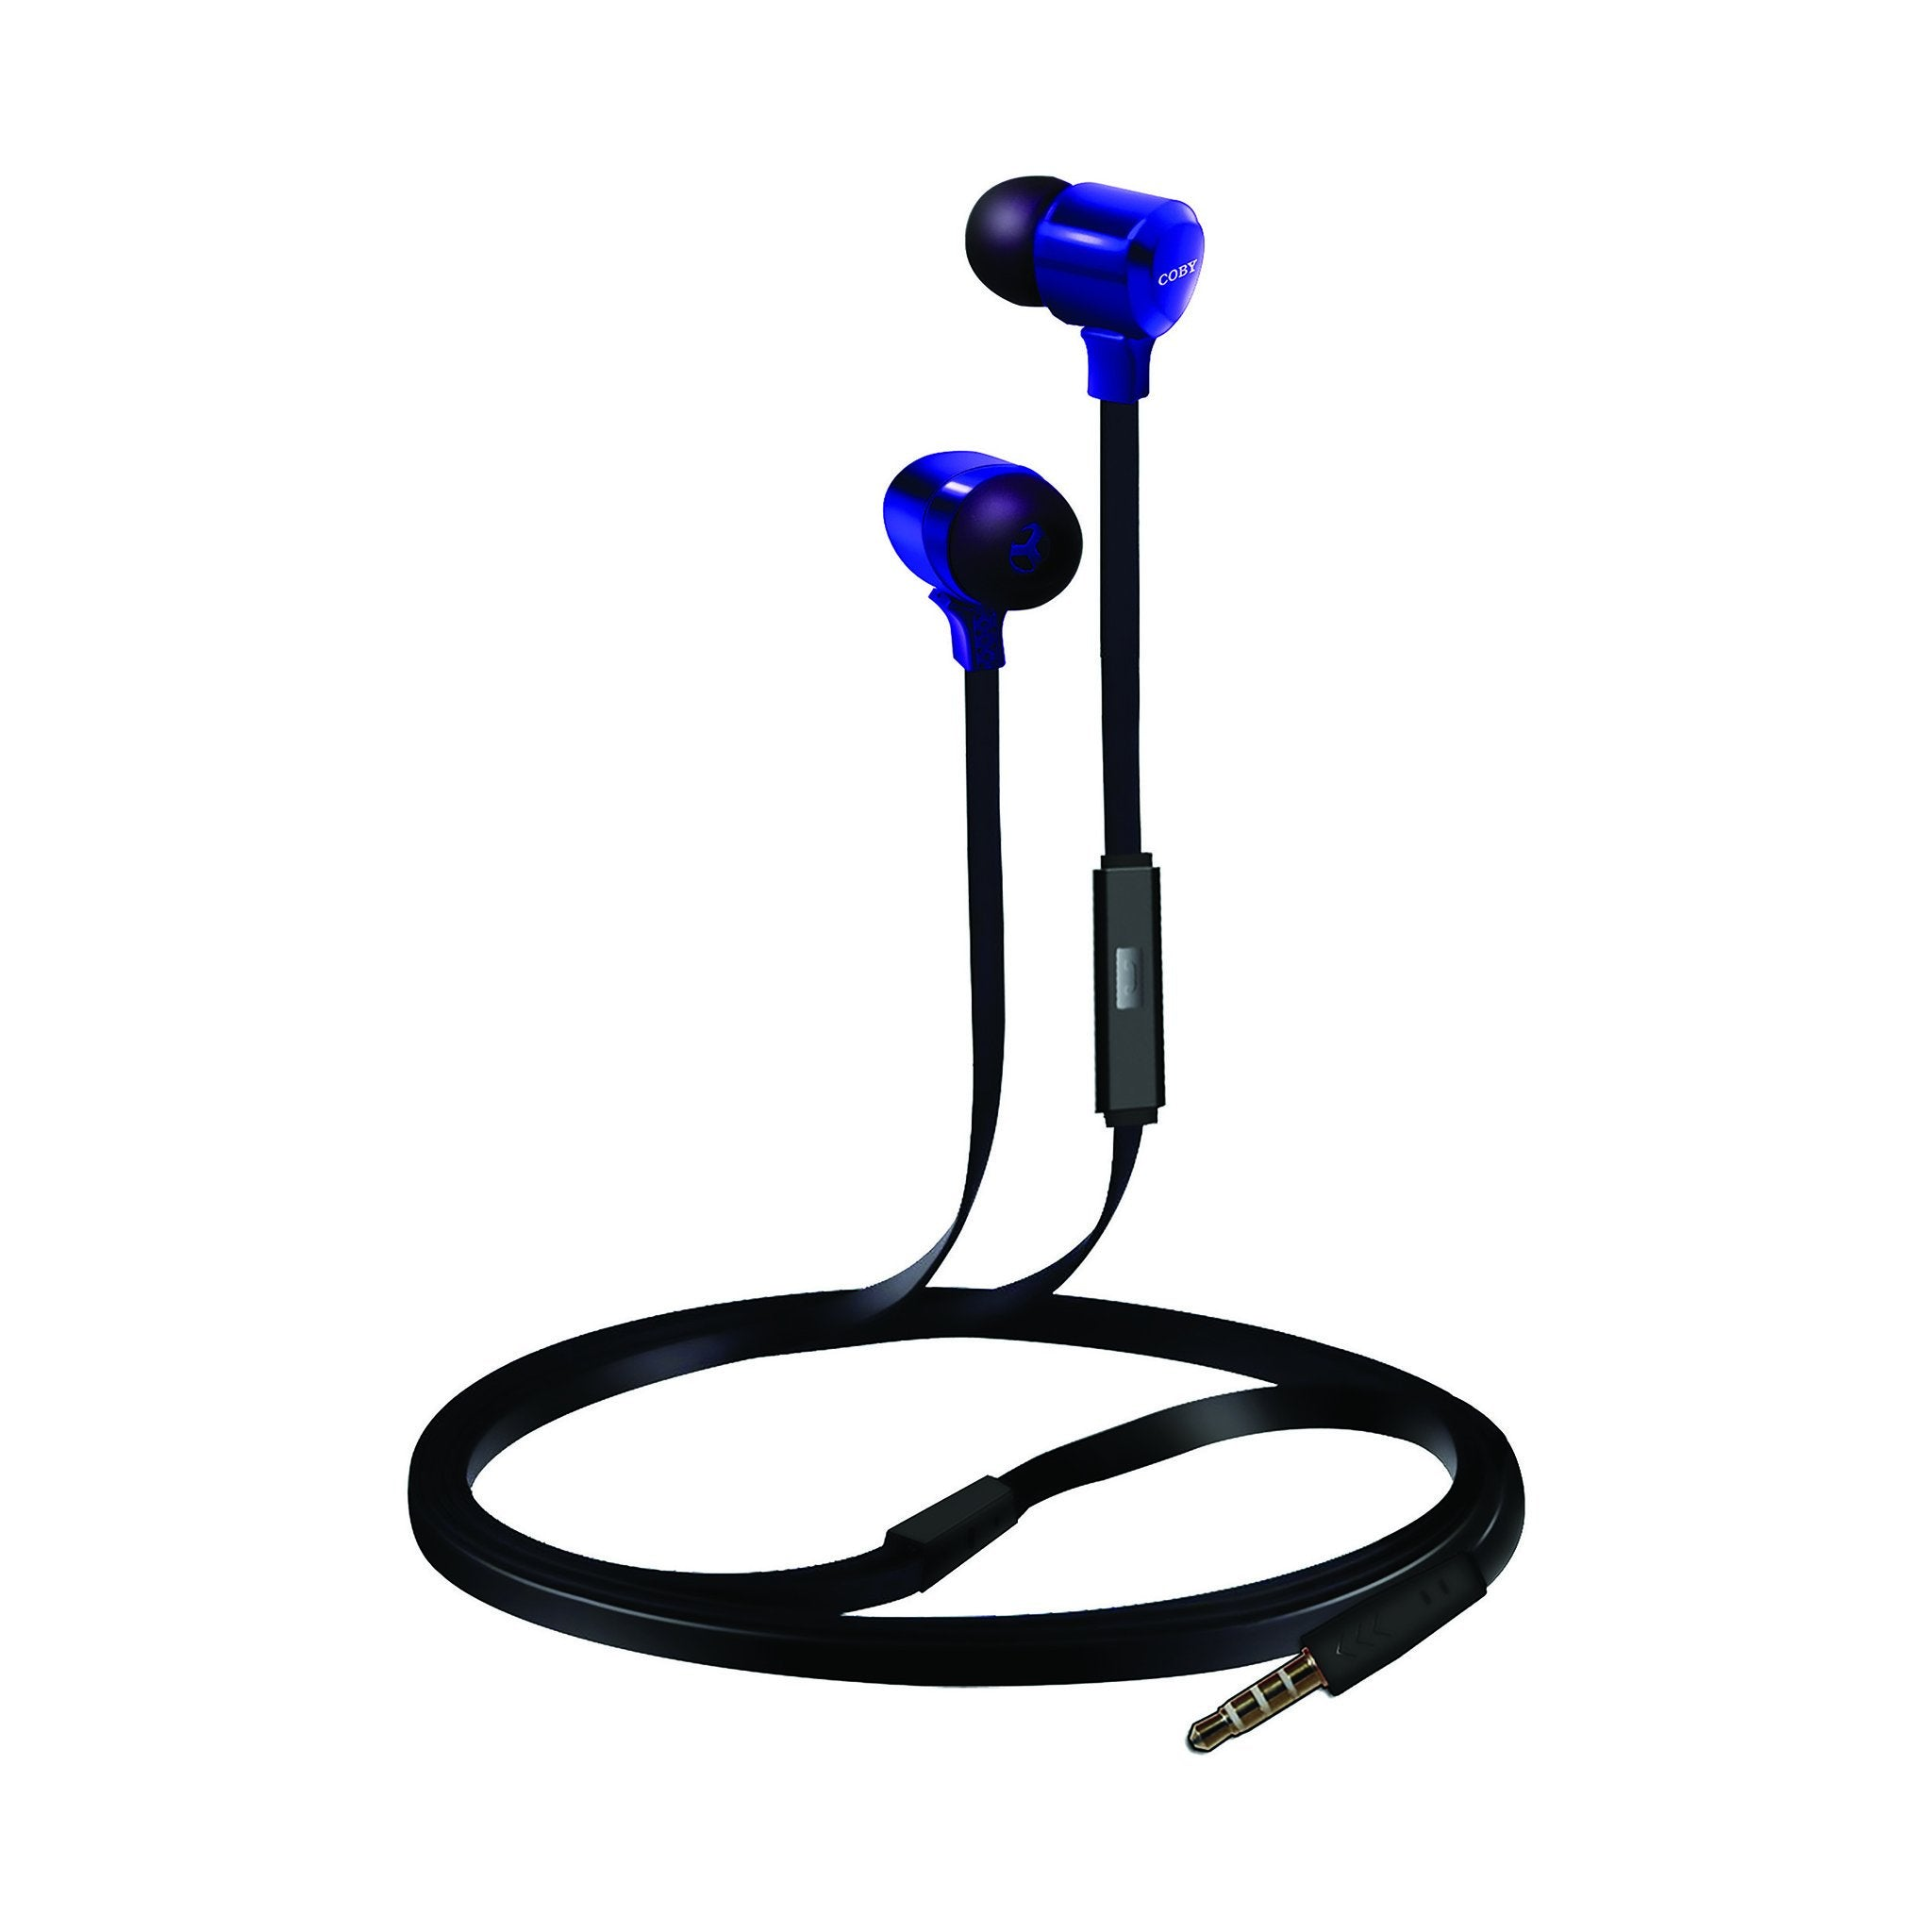 Reflex Stereo Earbuds